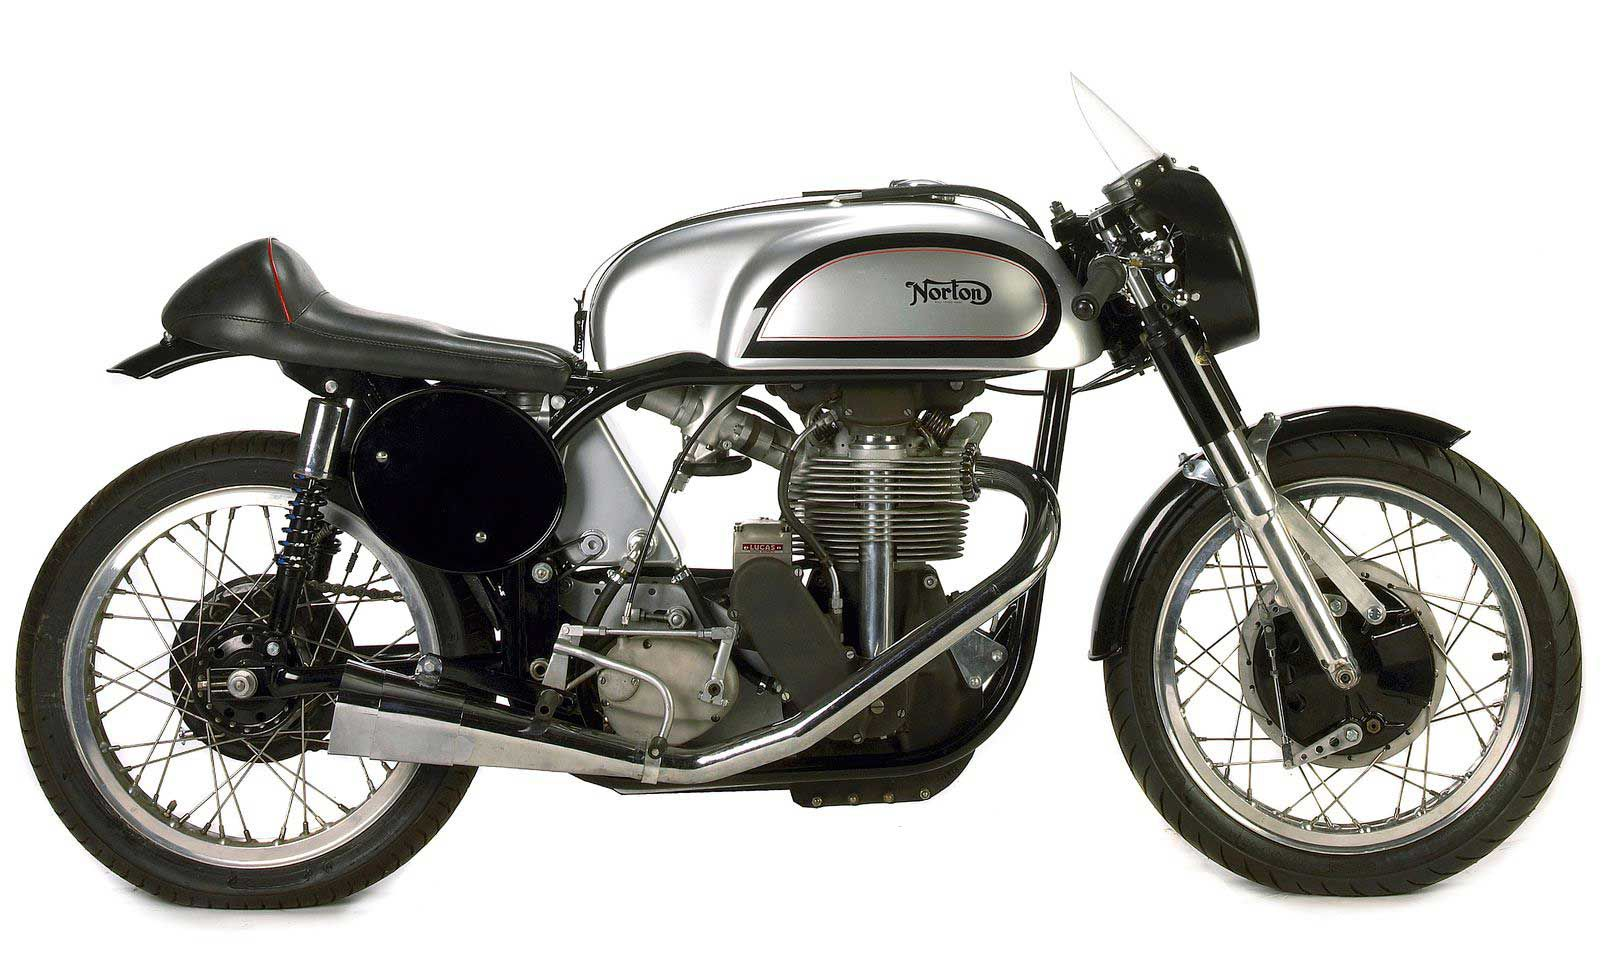 Norton continued selling the Manx single-cylinder production racer until 1963.